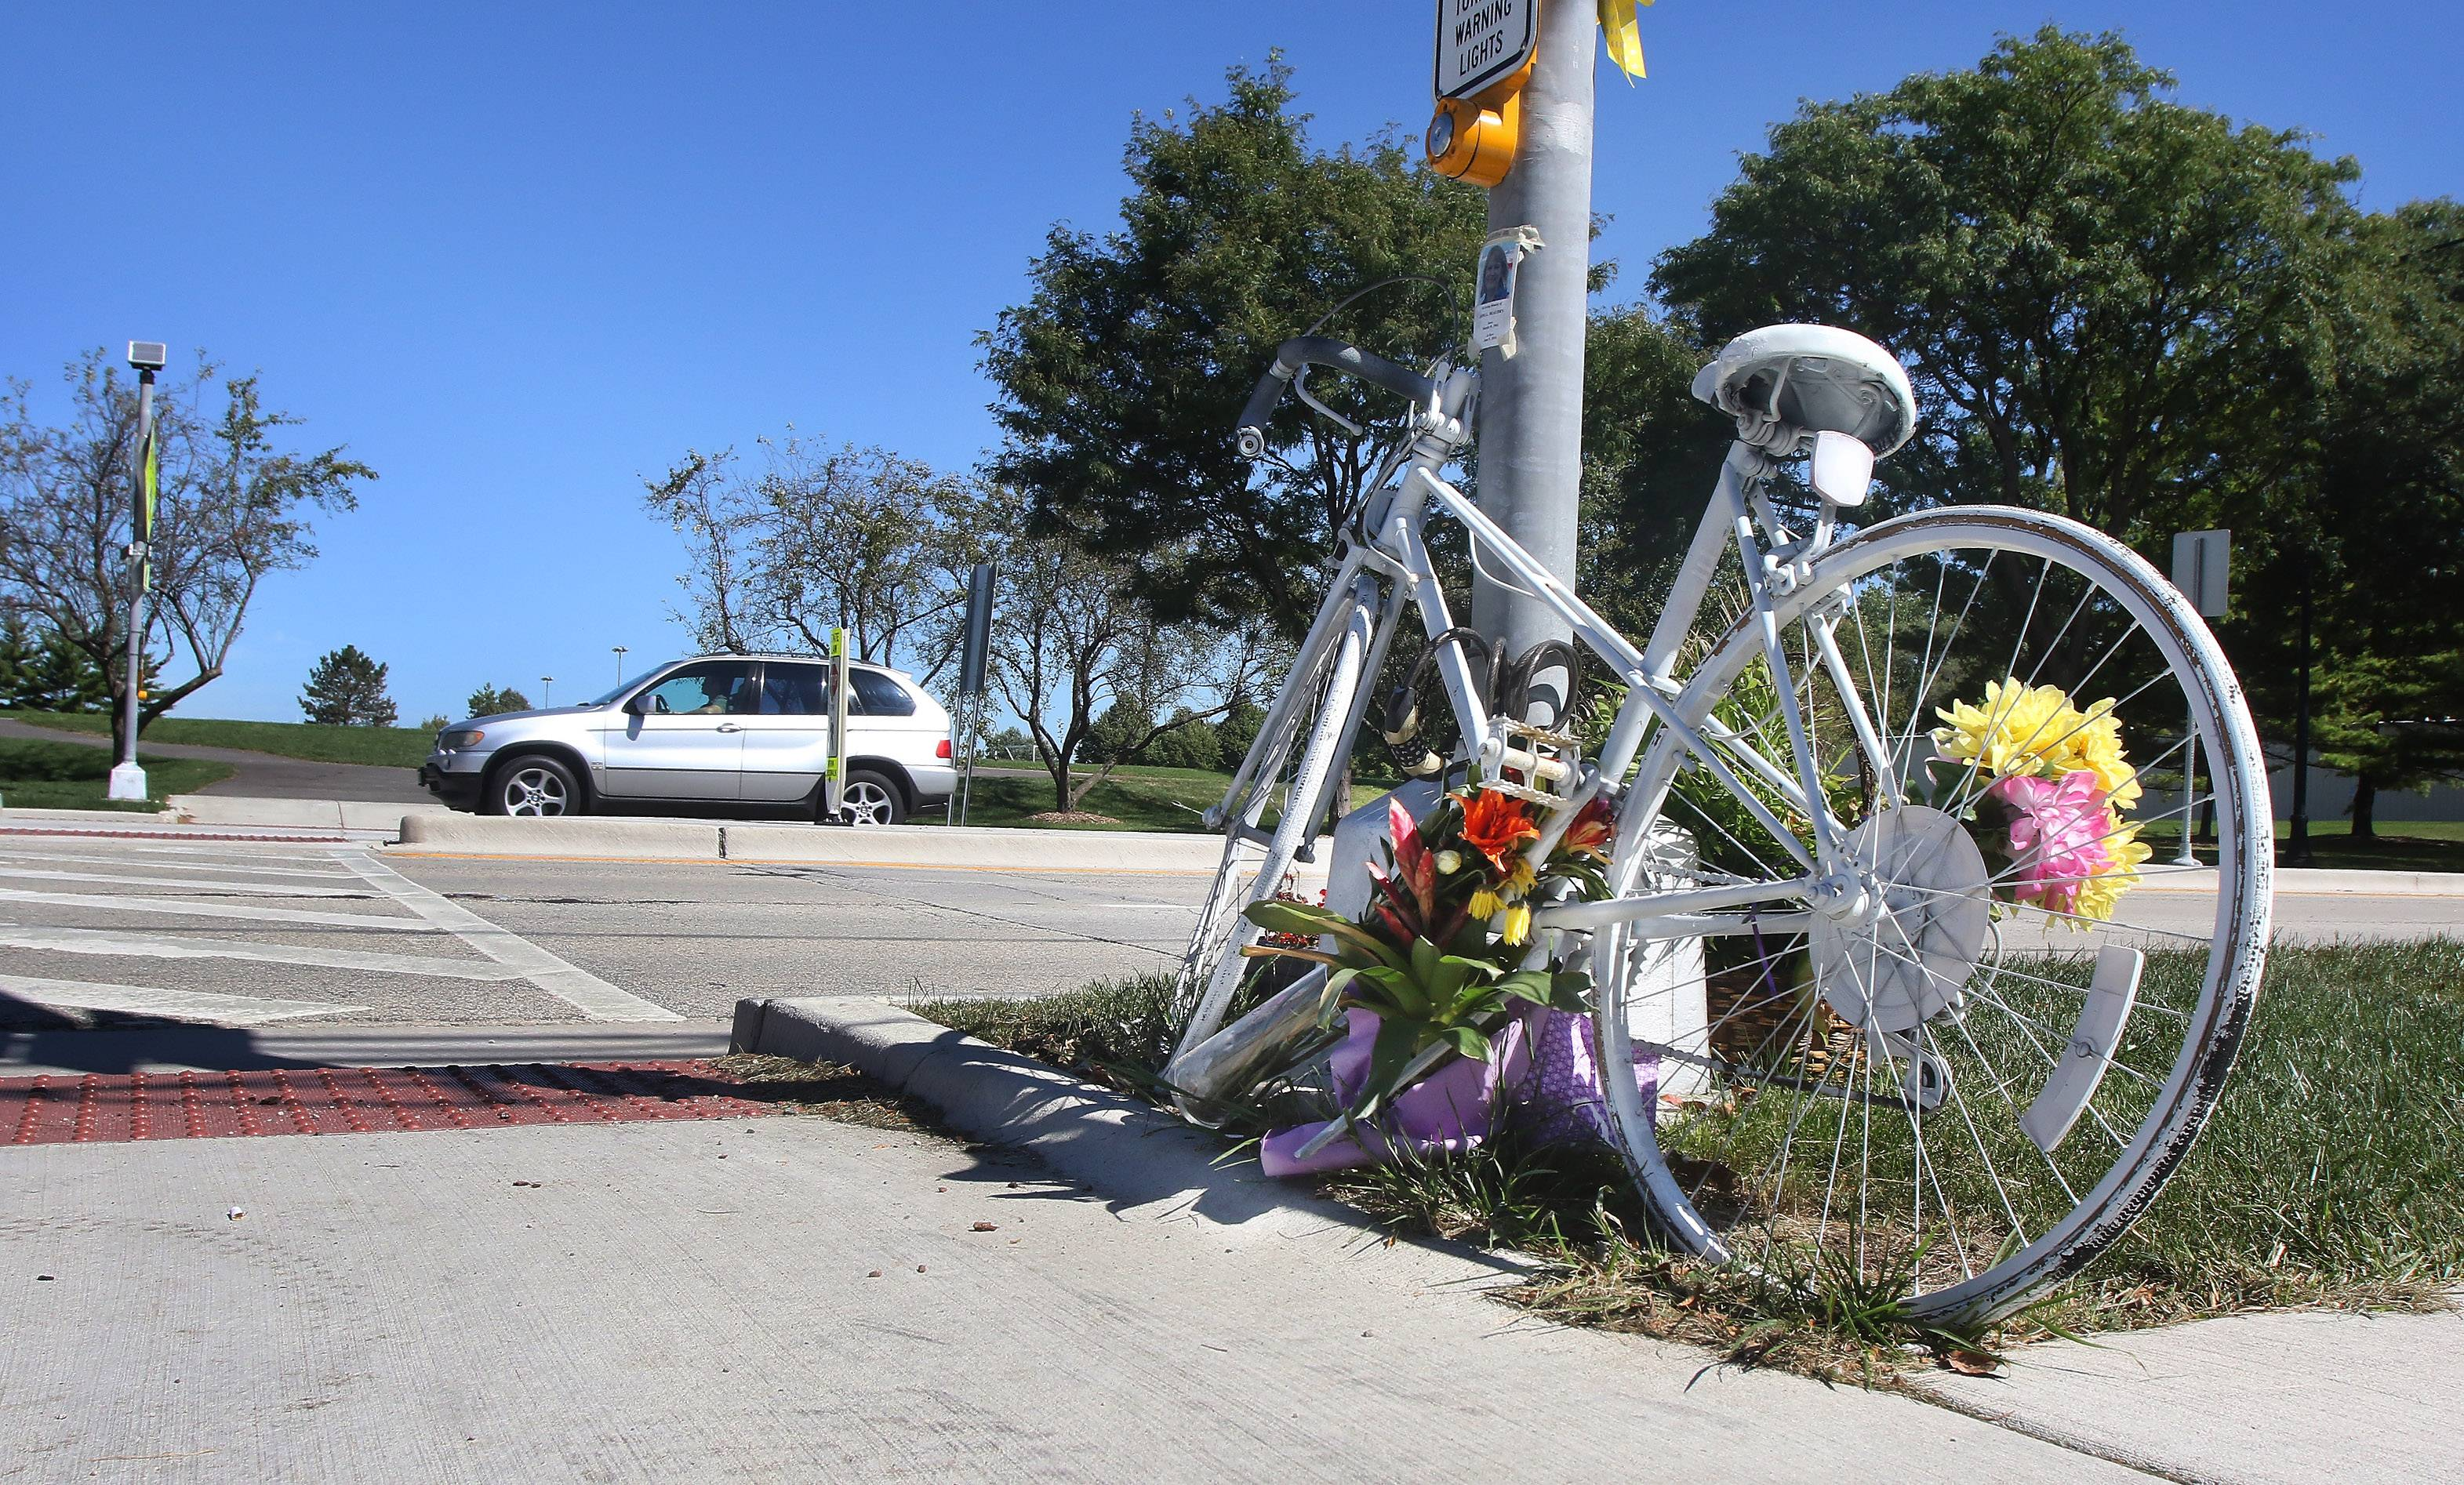 A memorial stands near Central Road and Melas Park in Mount Prospect in honor of Joni Beaudry, who died June 9 after an SUV struck her as she rode in the pedestrian crosswalk. Mount Prospect and IDOT officials met with residents Monday night to discuss possible improvements to make the crosswalk safer.